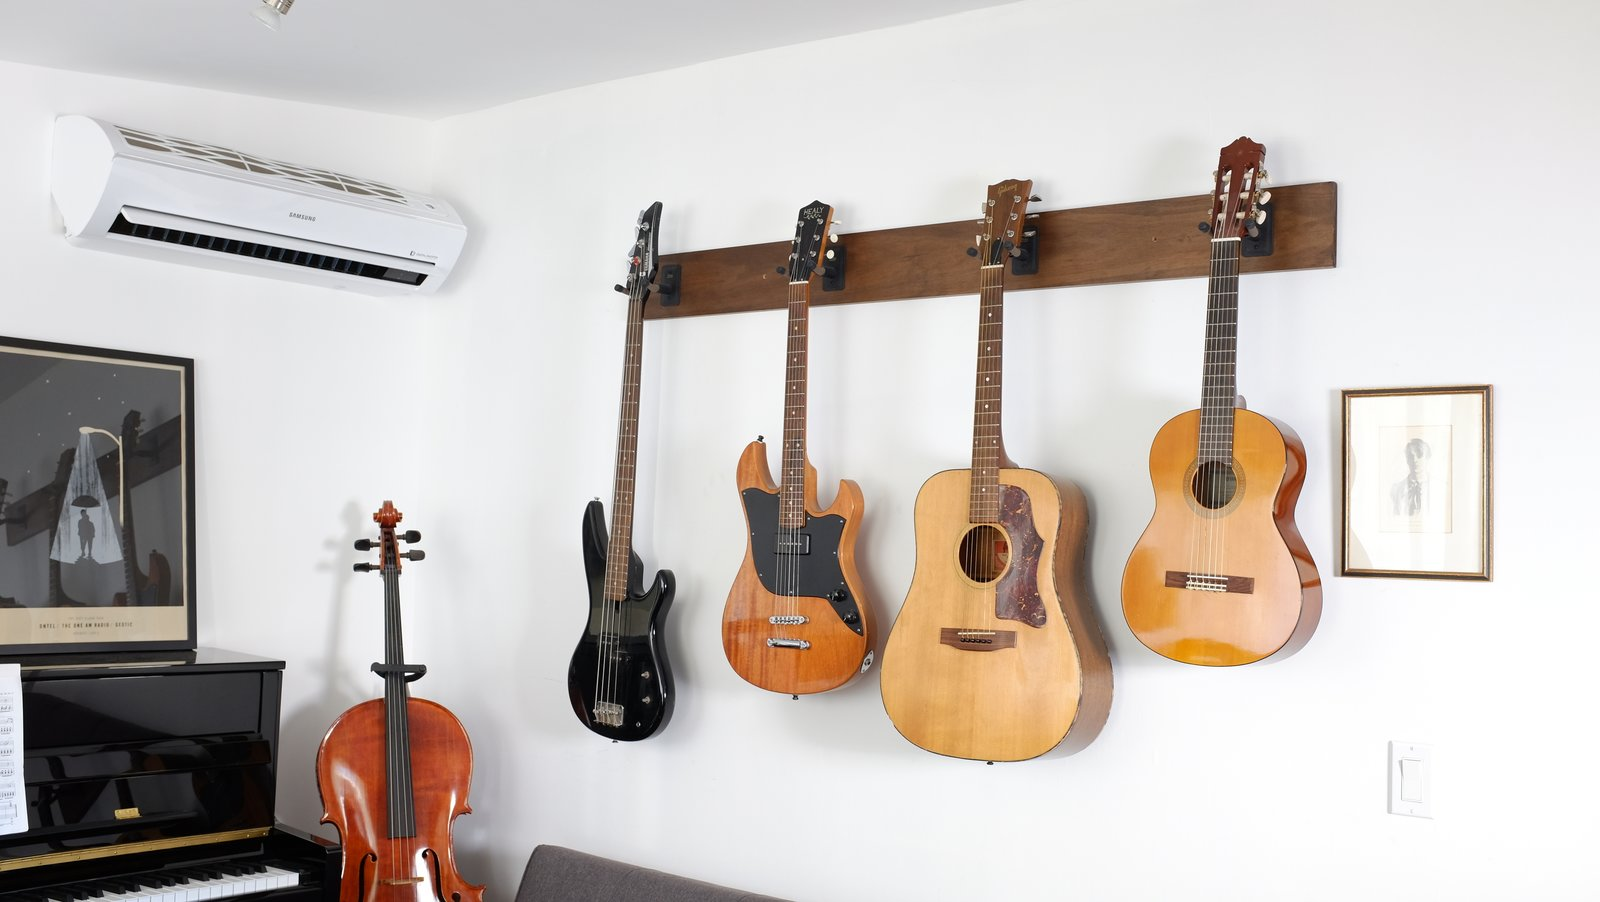 Composer and podcaster Hrishikesh Hirway hangs guitars and a bass from wall-mounts in his Echo Park home to conserve space.